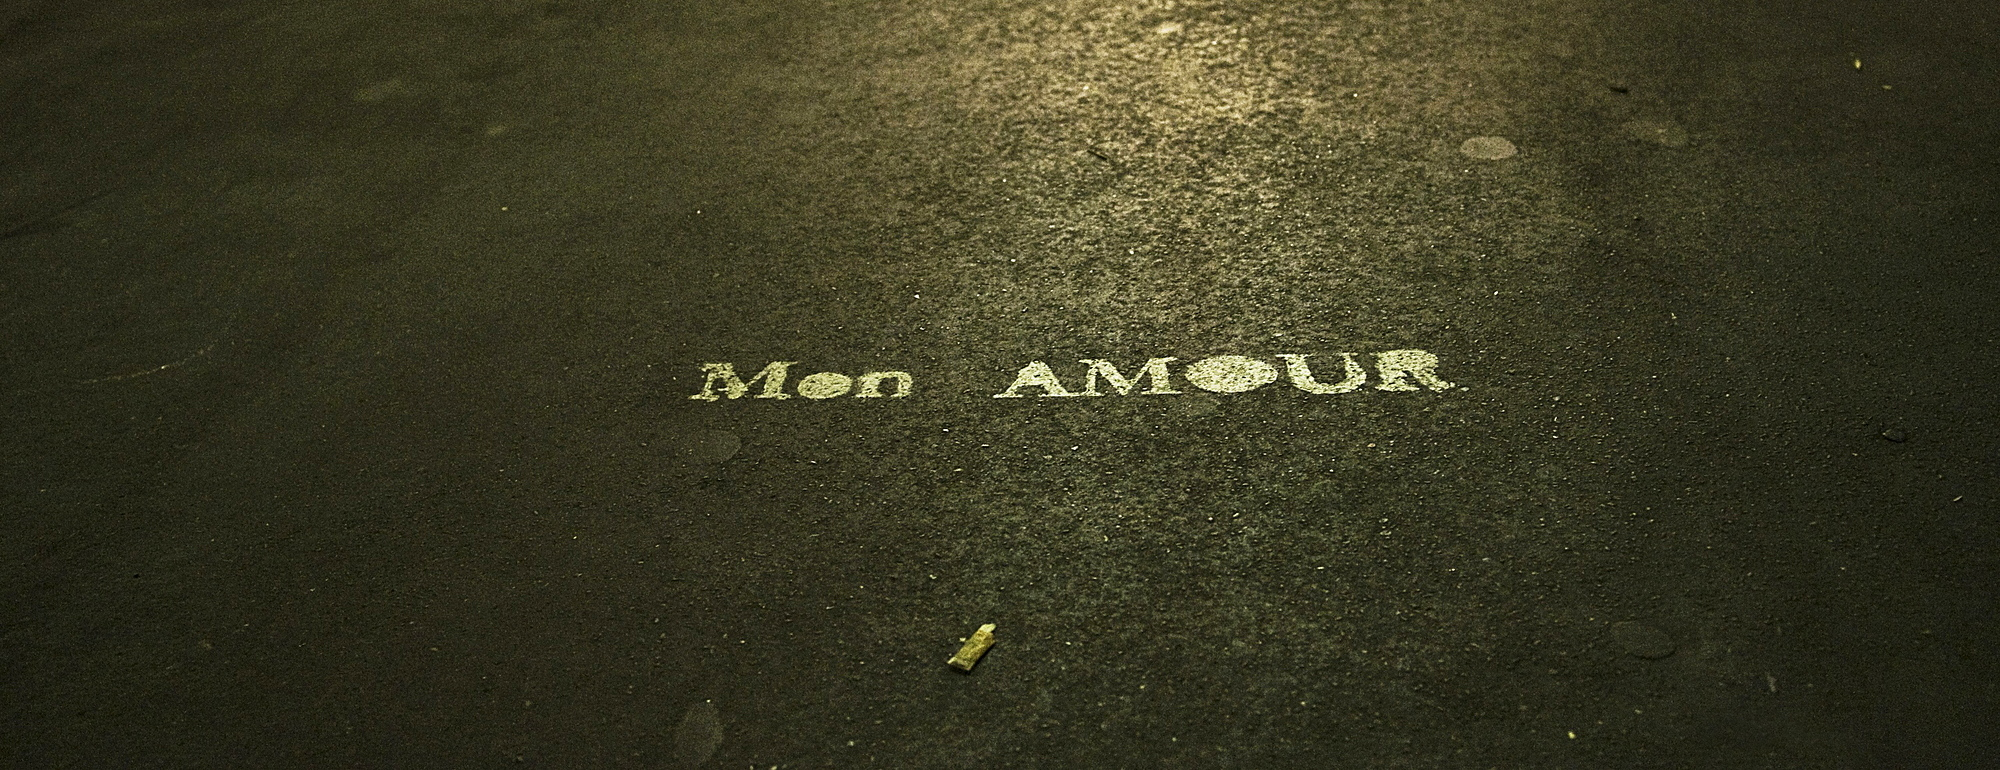 "832-103746 ( Azucena Viloria ) - Graffiti on the ground, ""Mon amour"" as a declaration of love in Paris, France, Europe"